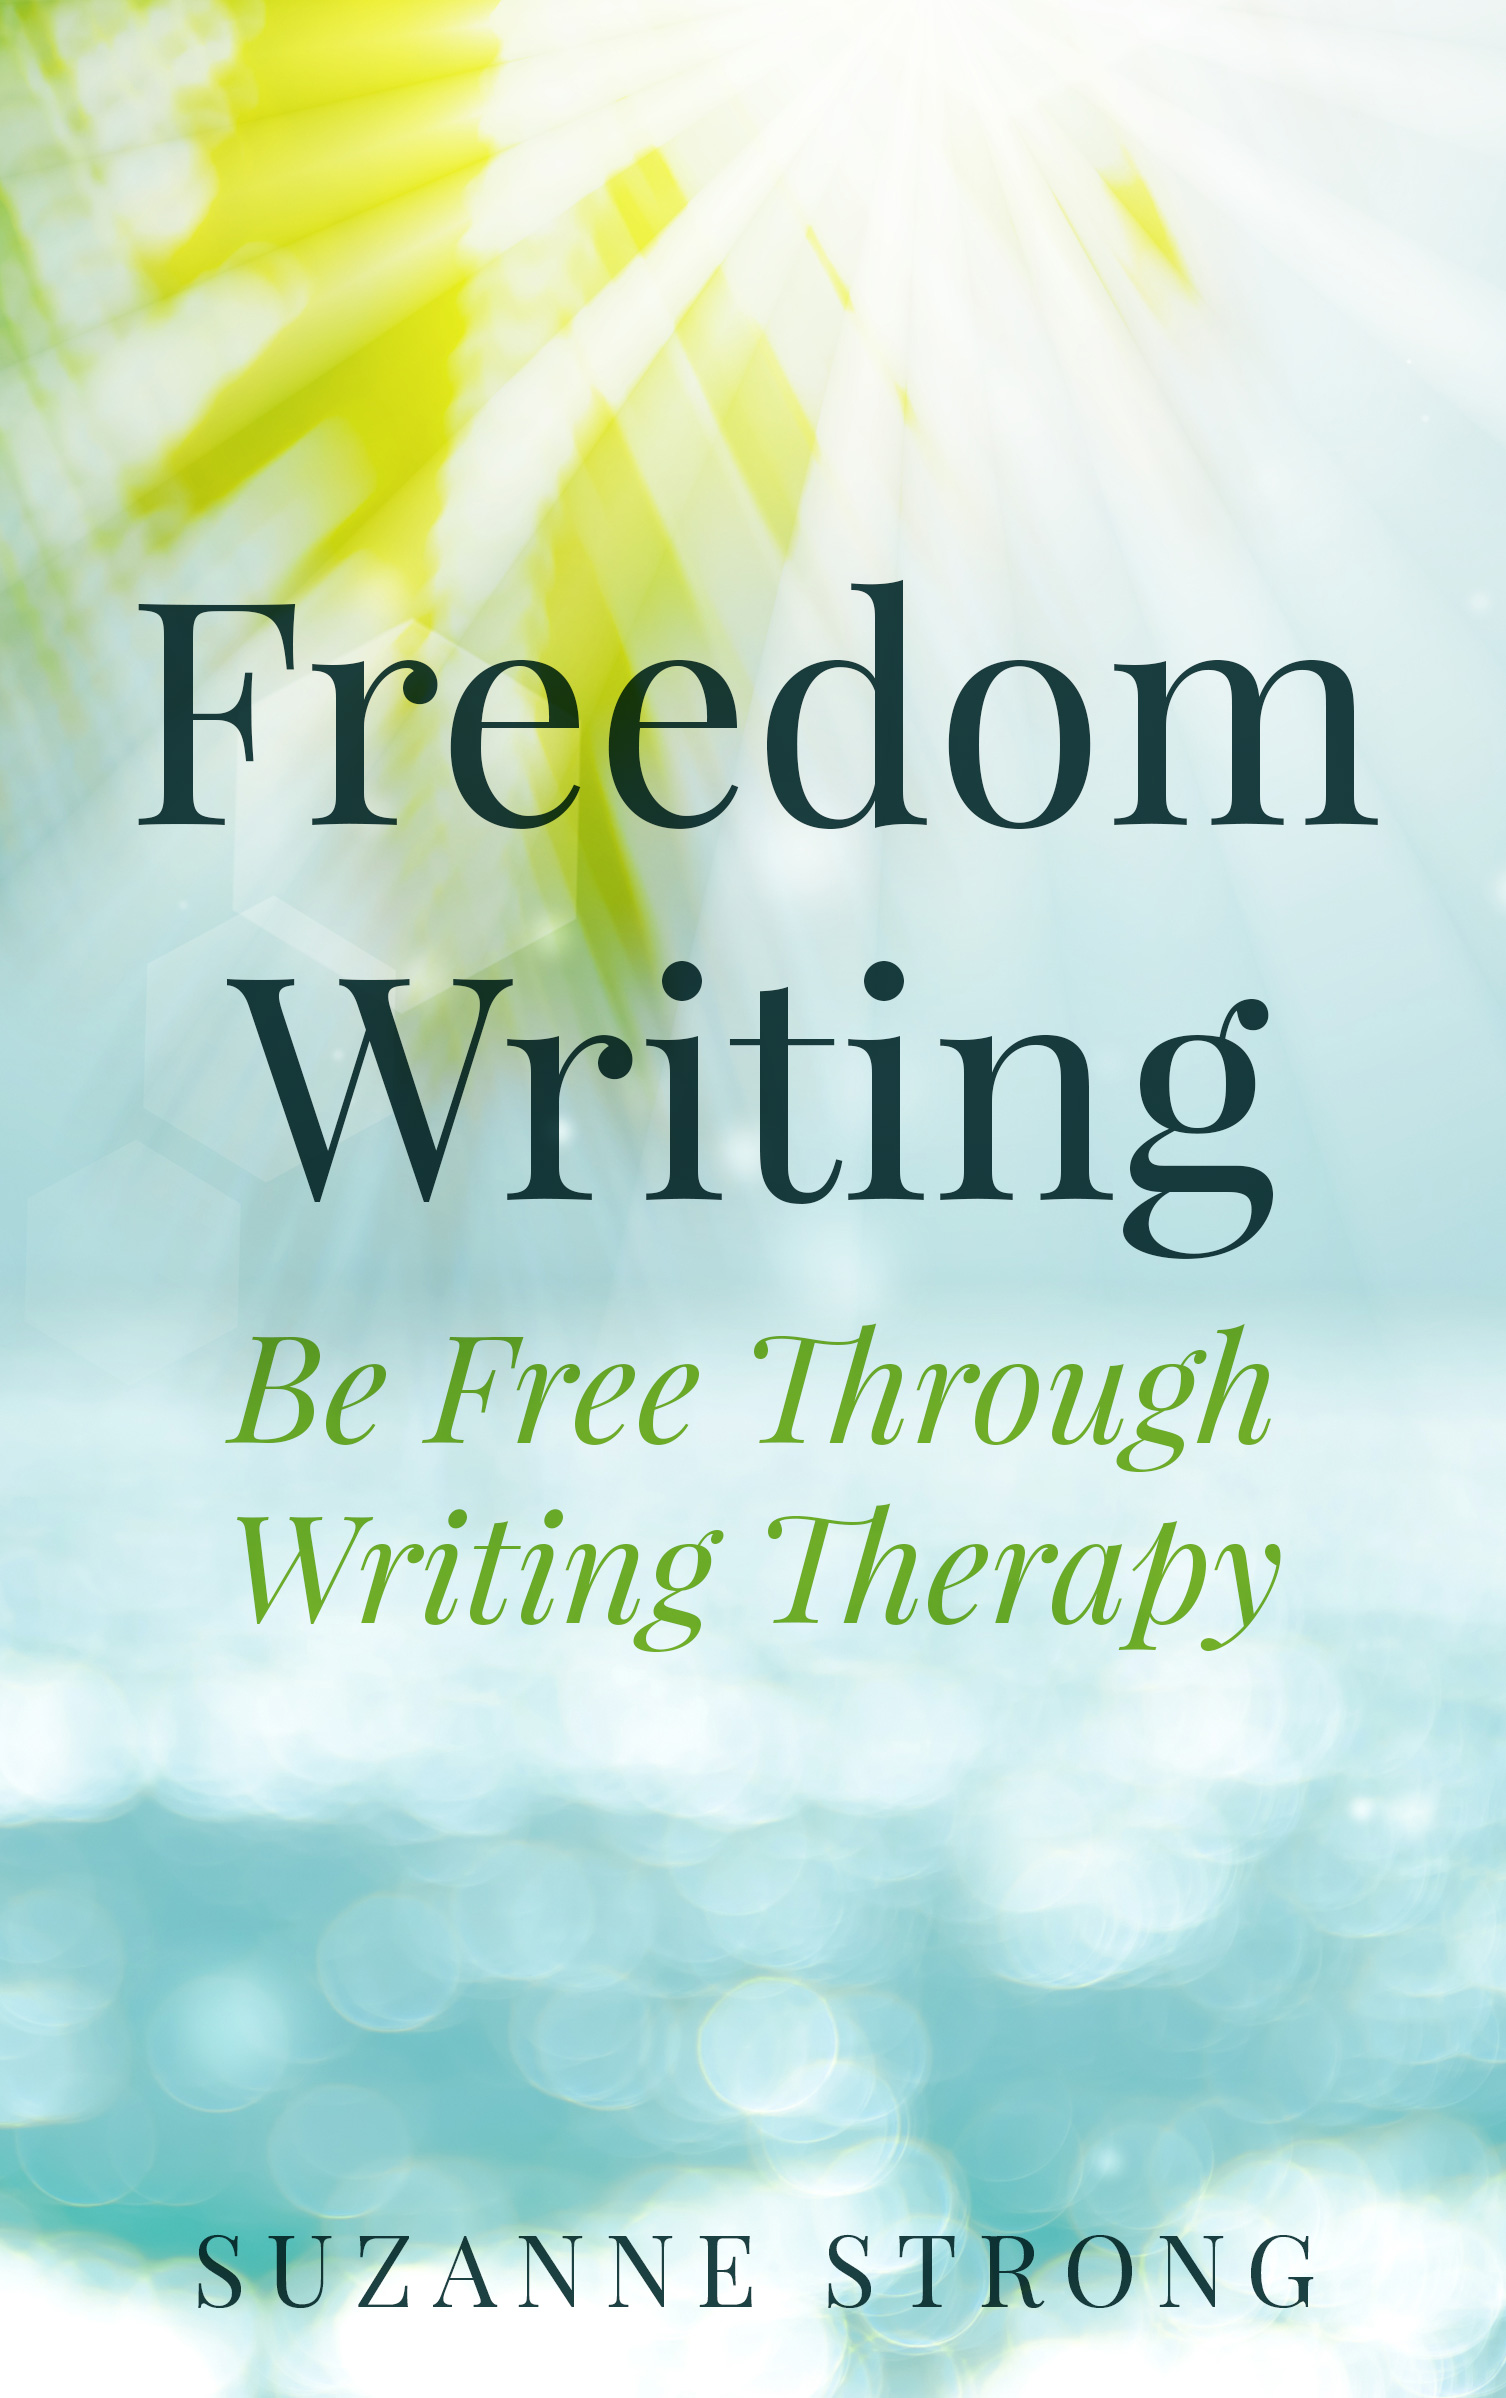 freedomWriting-front (5)